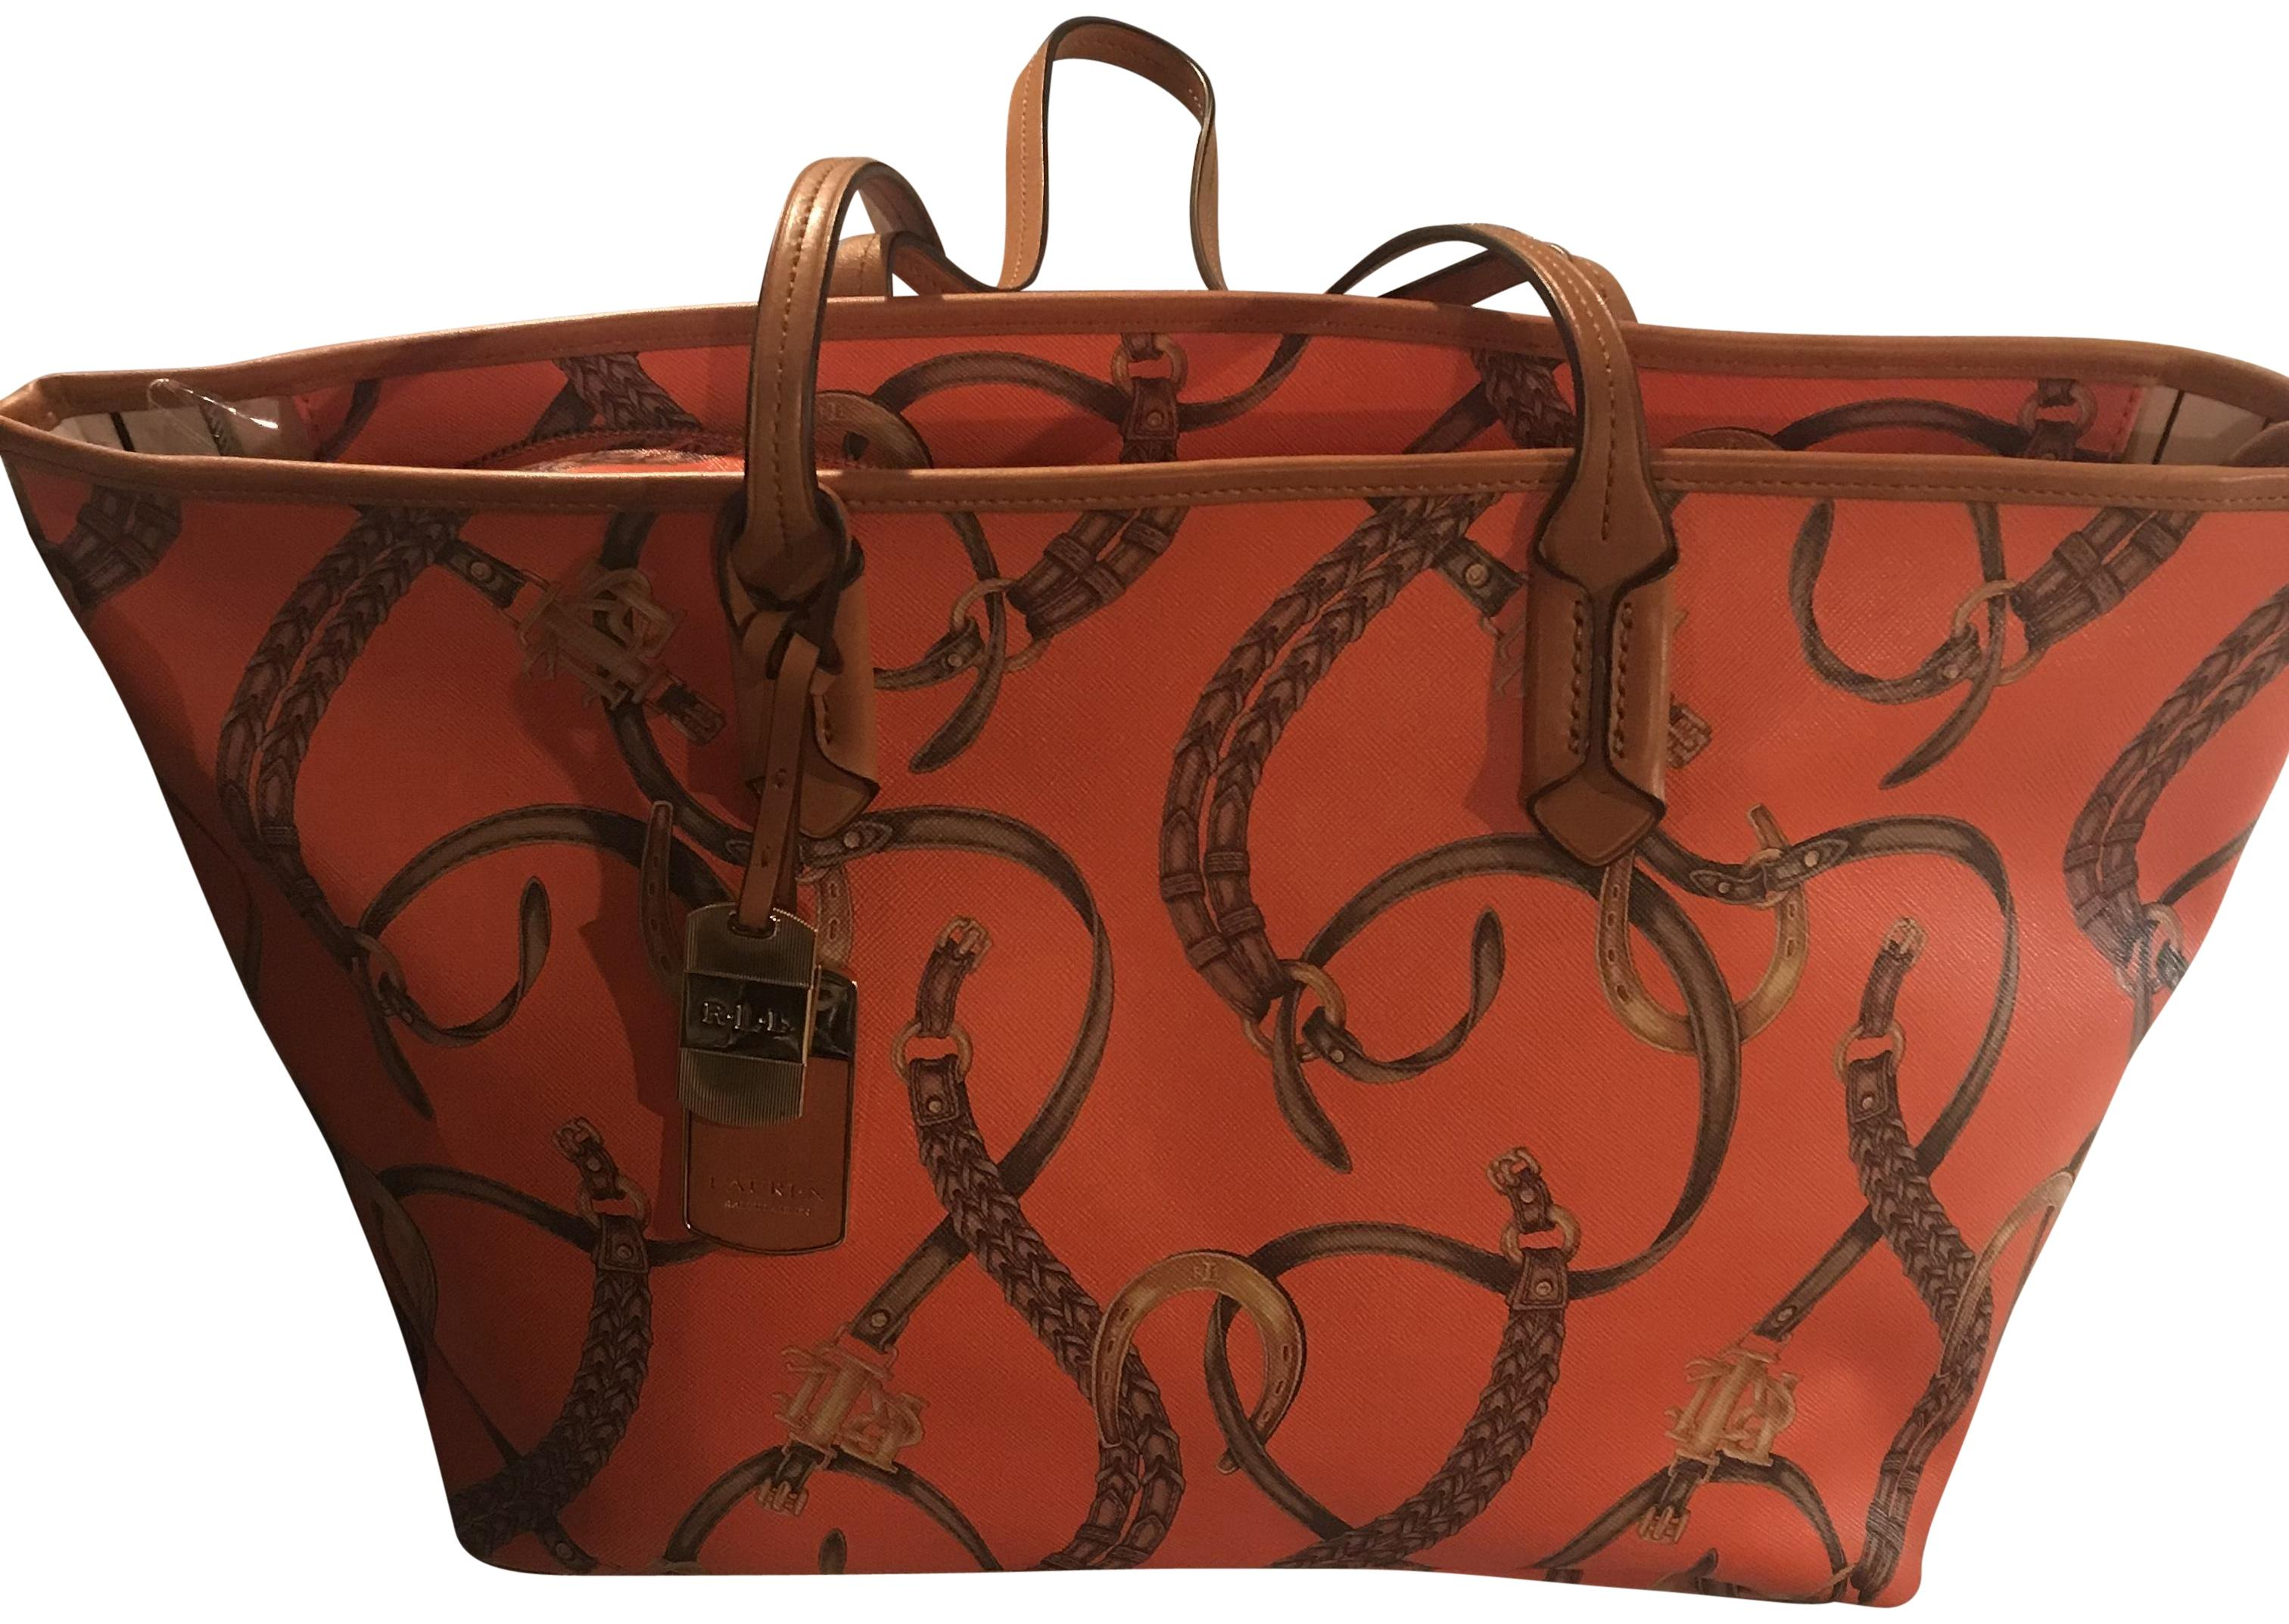 ... coupon for ralph lauren tote in orange tan 3bbf1 9c300 f1c1985322ec3